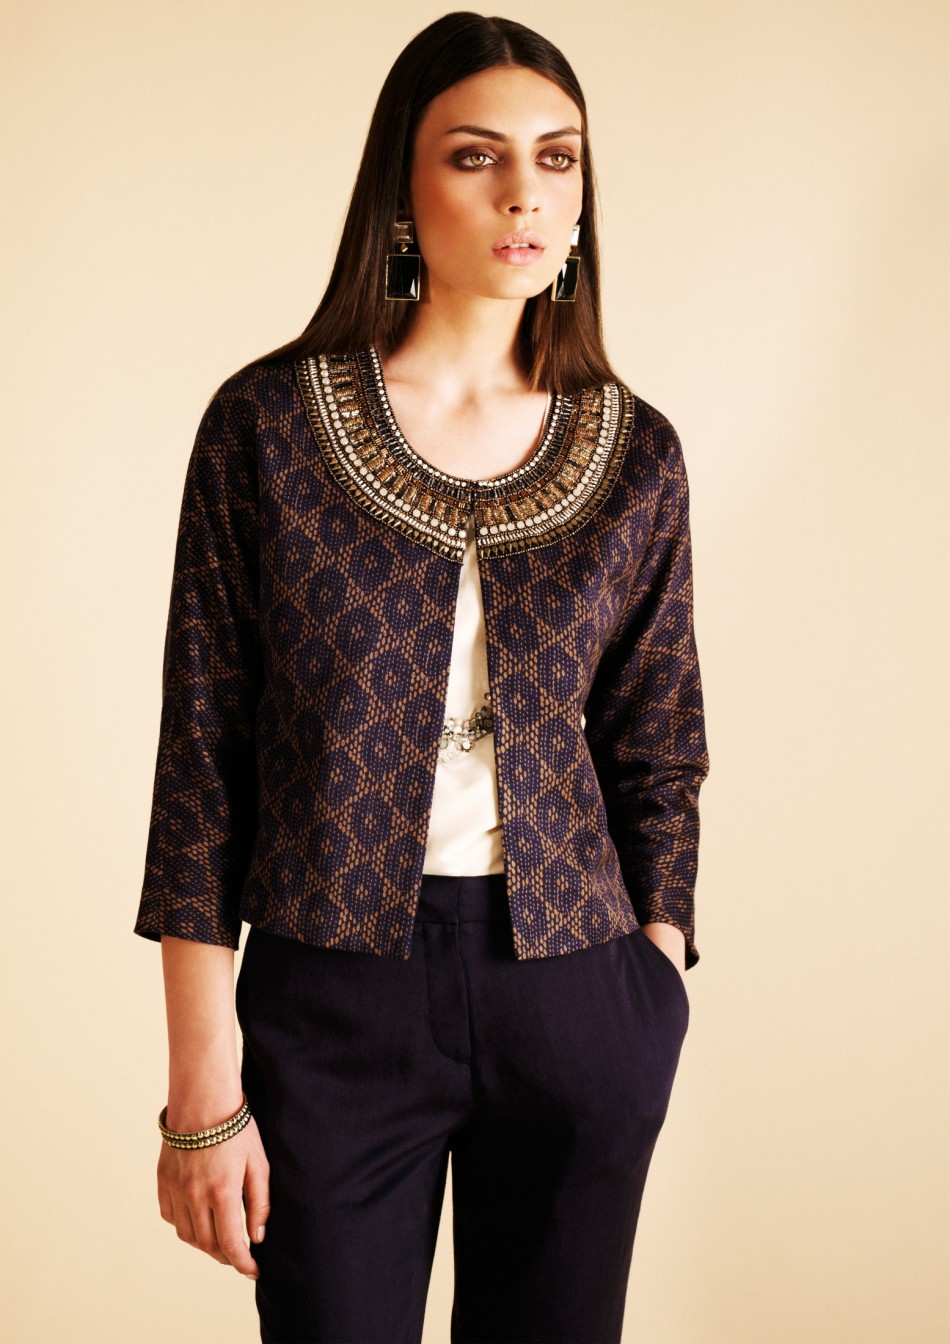 ZARDOZI EMBELLISHED JACKET